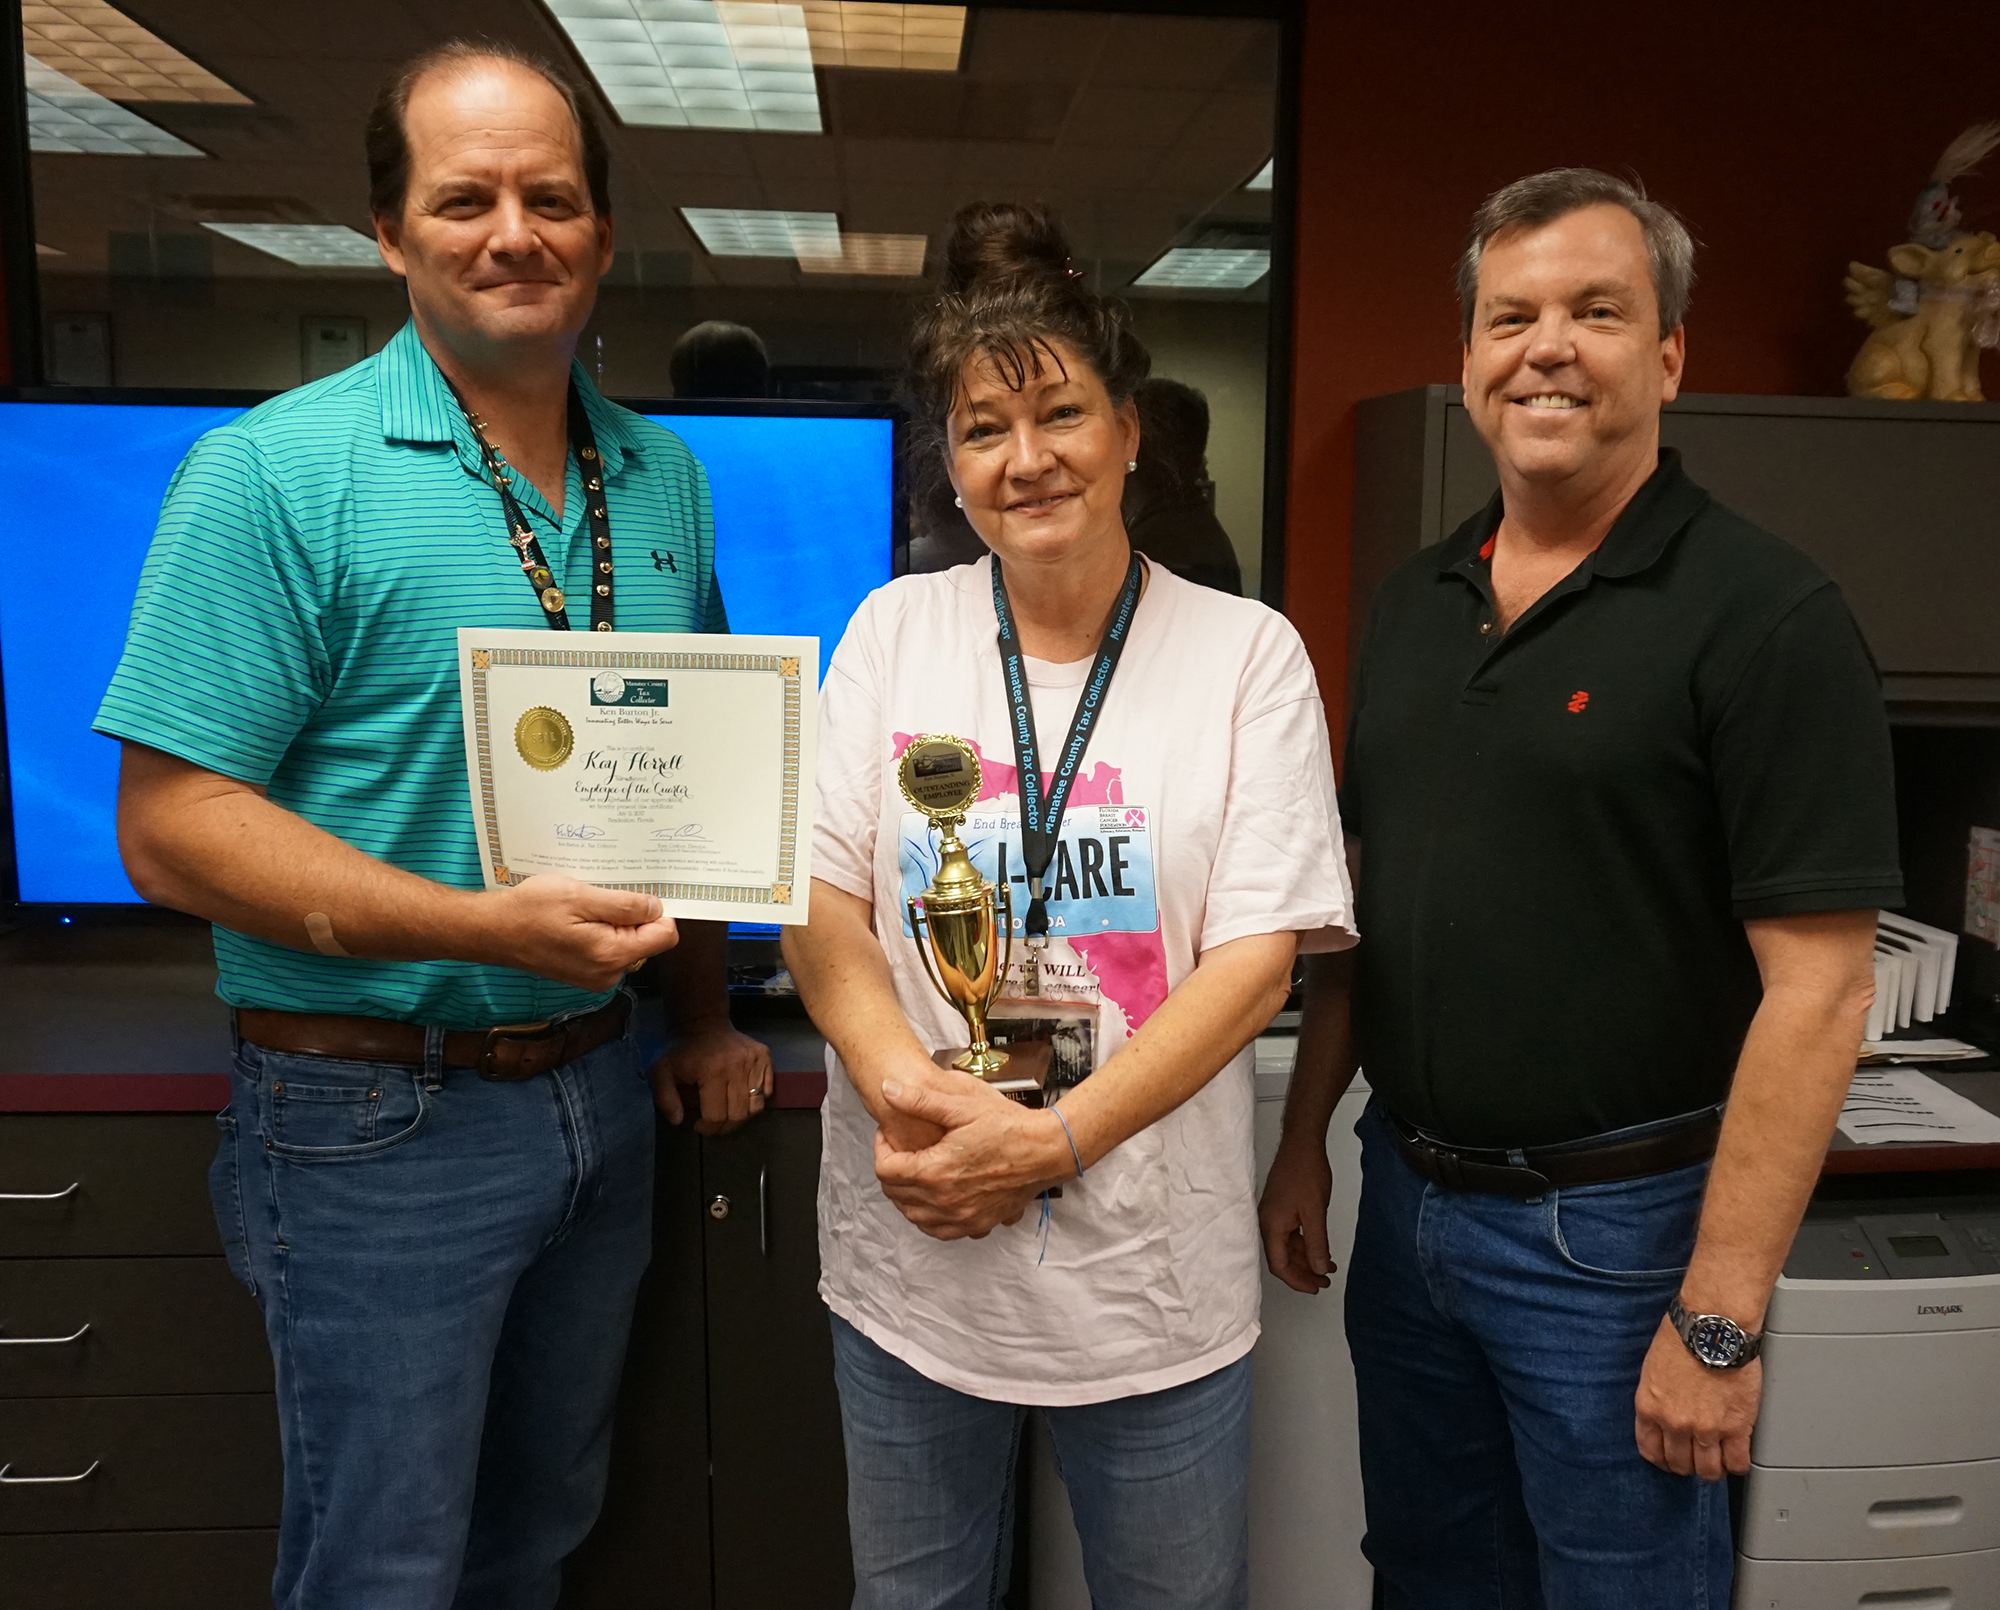 Employee of the Third Quarter 2017, Kay Horrell